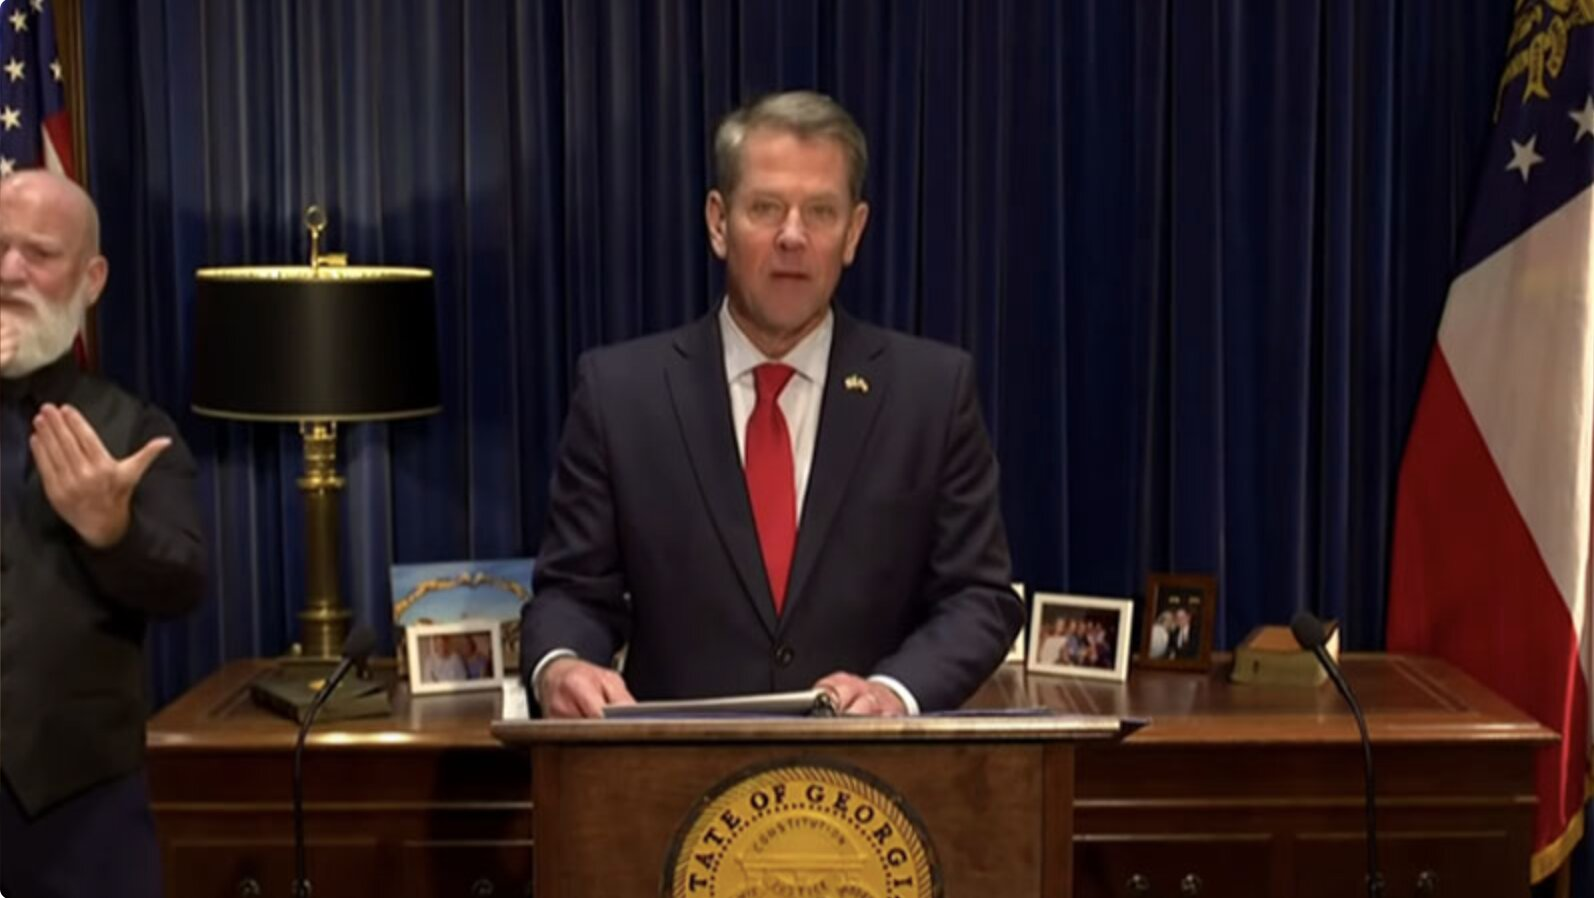 Georgia Governor Kemp Calls for Audit of Signatures on Ballot Envelopes